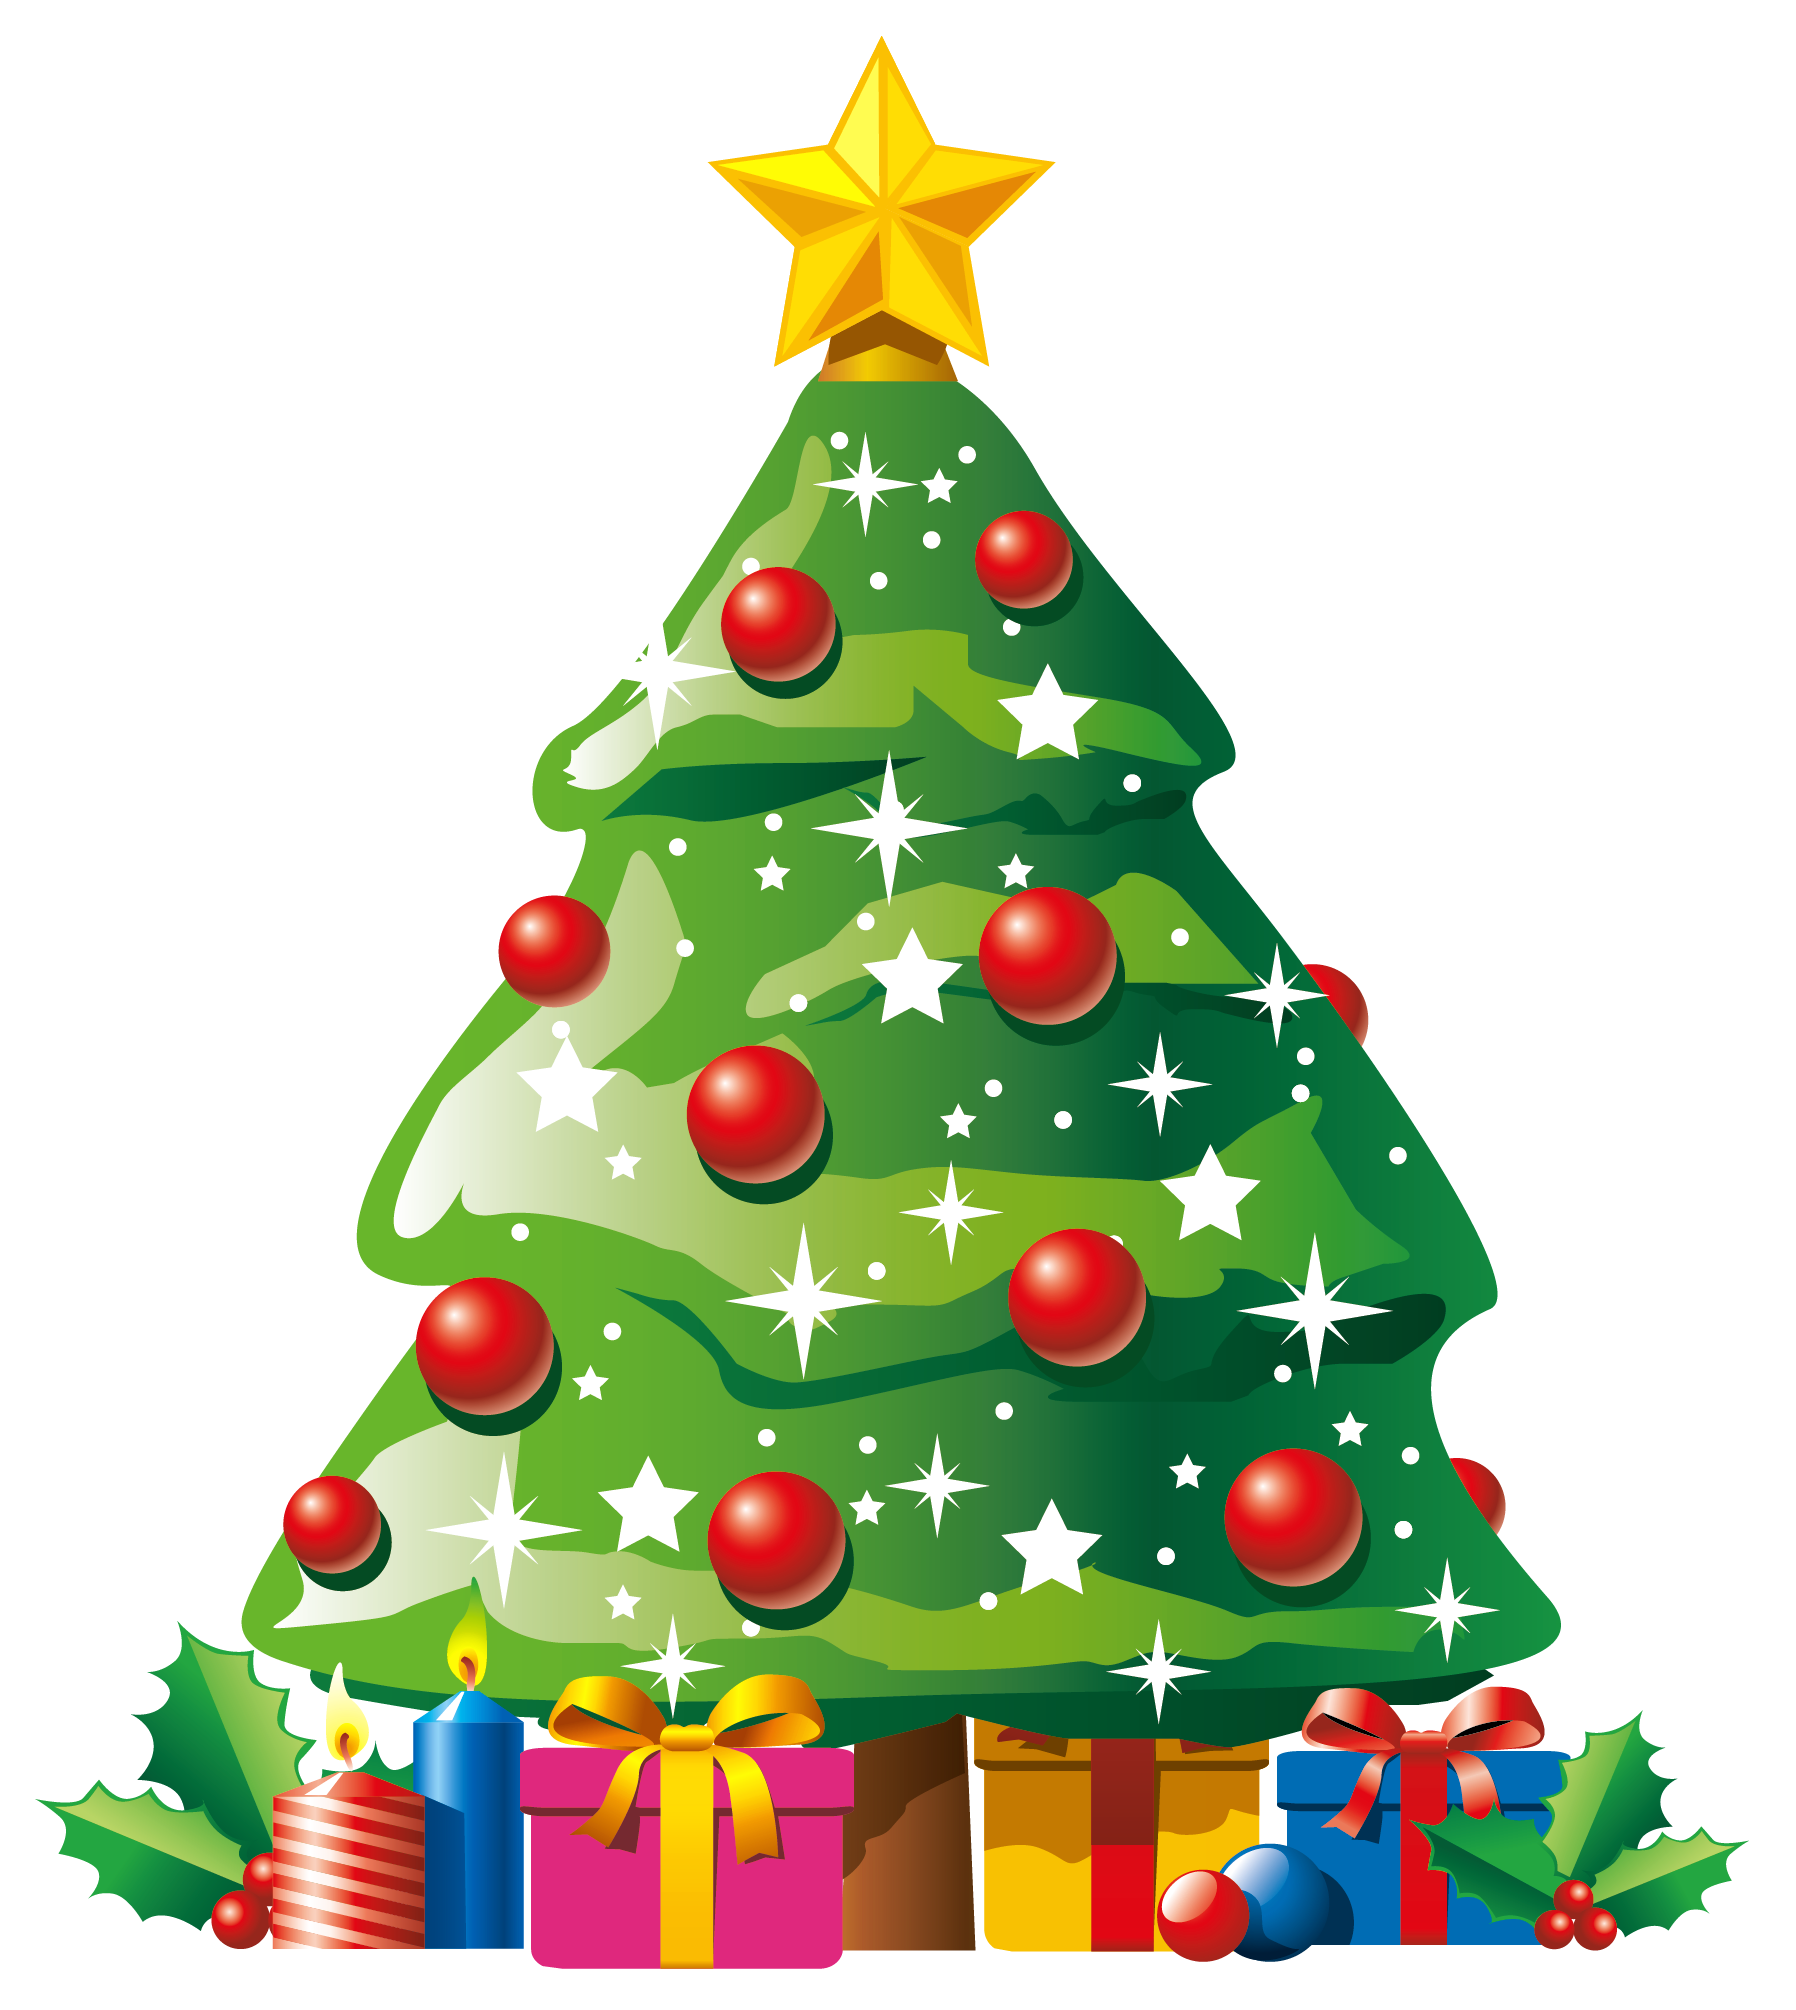 Transparent Christmas Clipart | Free download on ClipArtMag